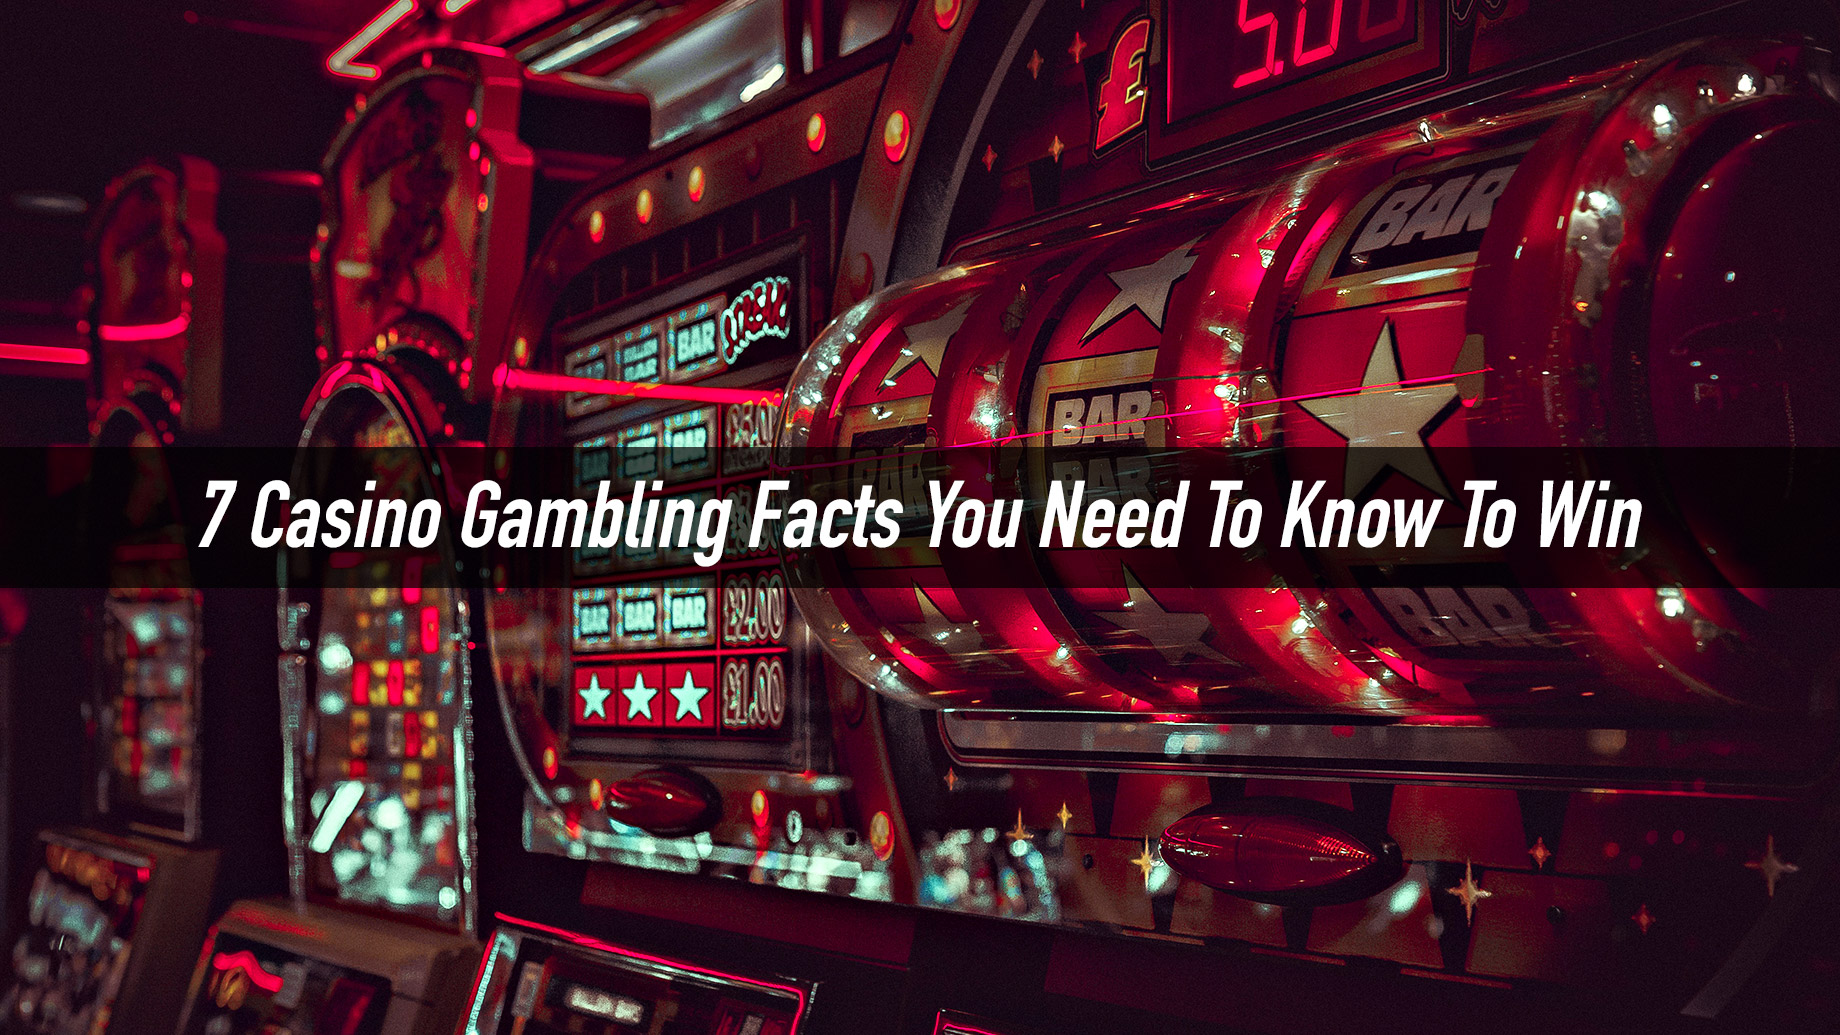 7 Casino Gambling Facts You Need To Know To Win